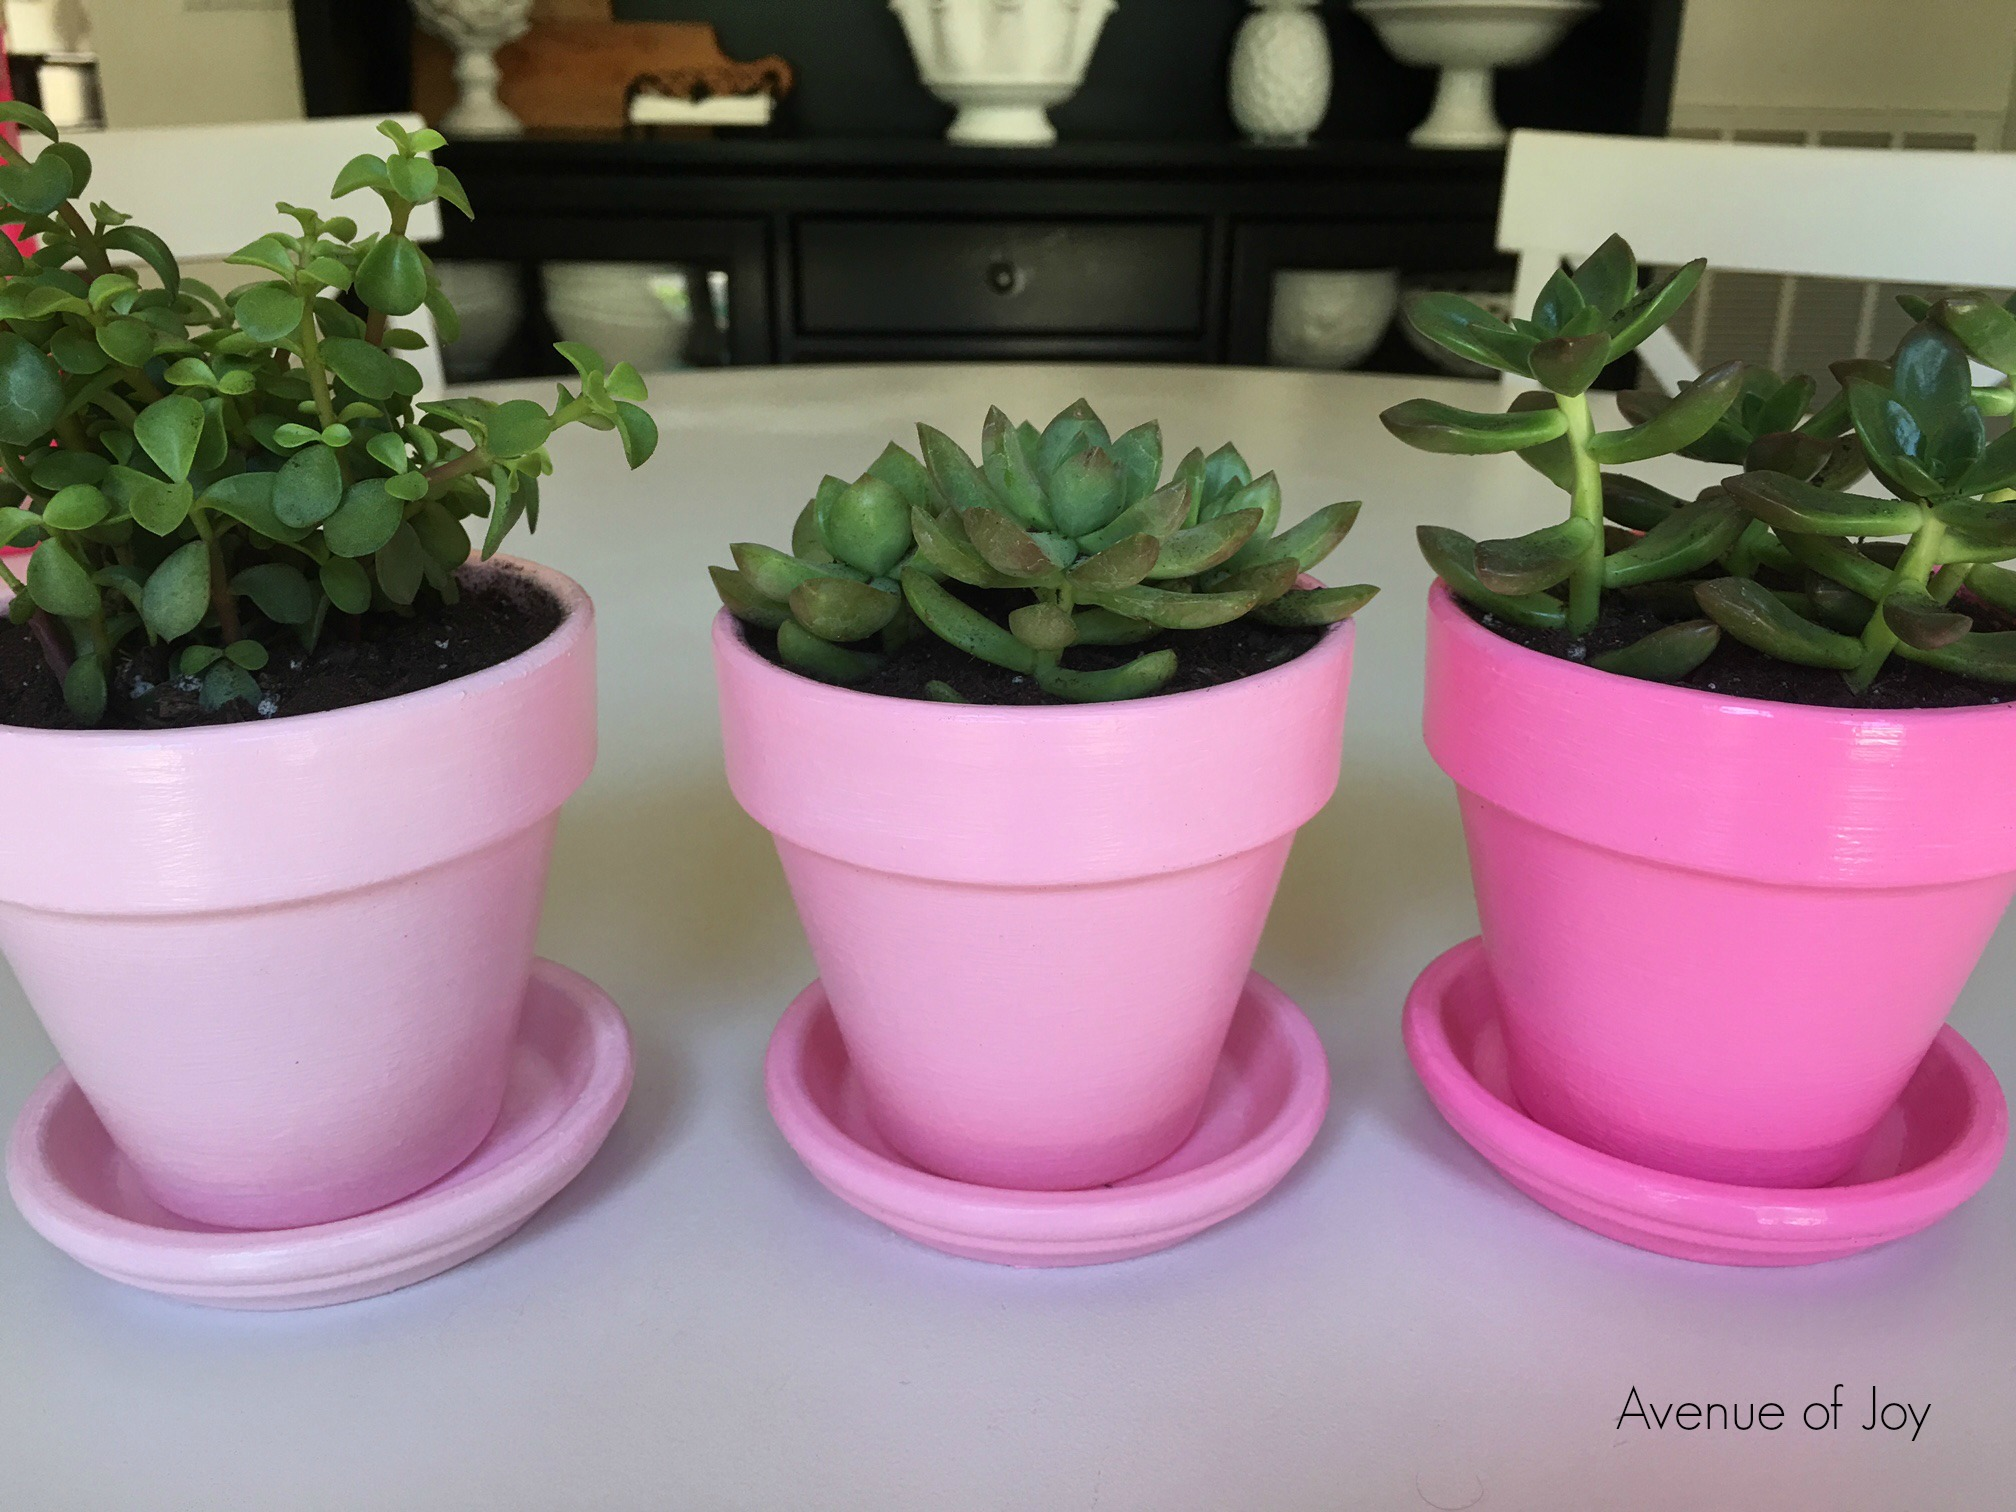 Diy ombre flower pots avenue of joy these sweet little ombre flower pots where so easy to make and are a nice addition to my new home office im still working on the last odds and ends of the mightylinksfo